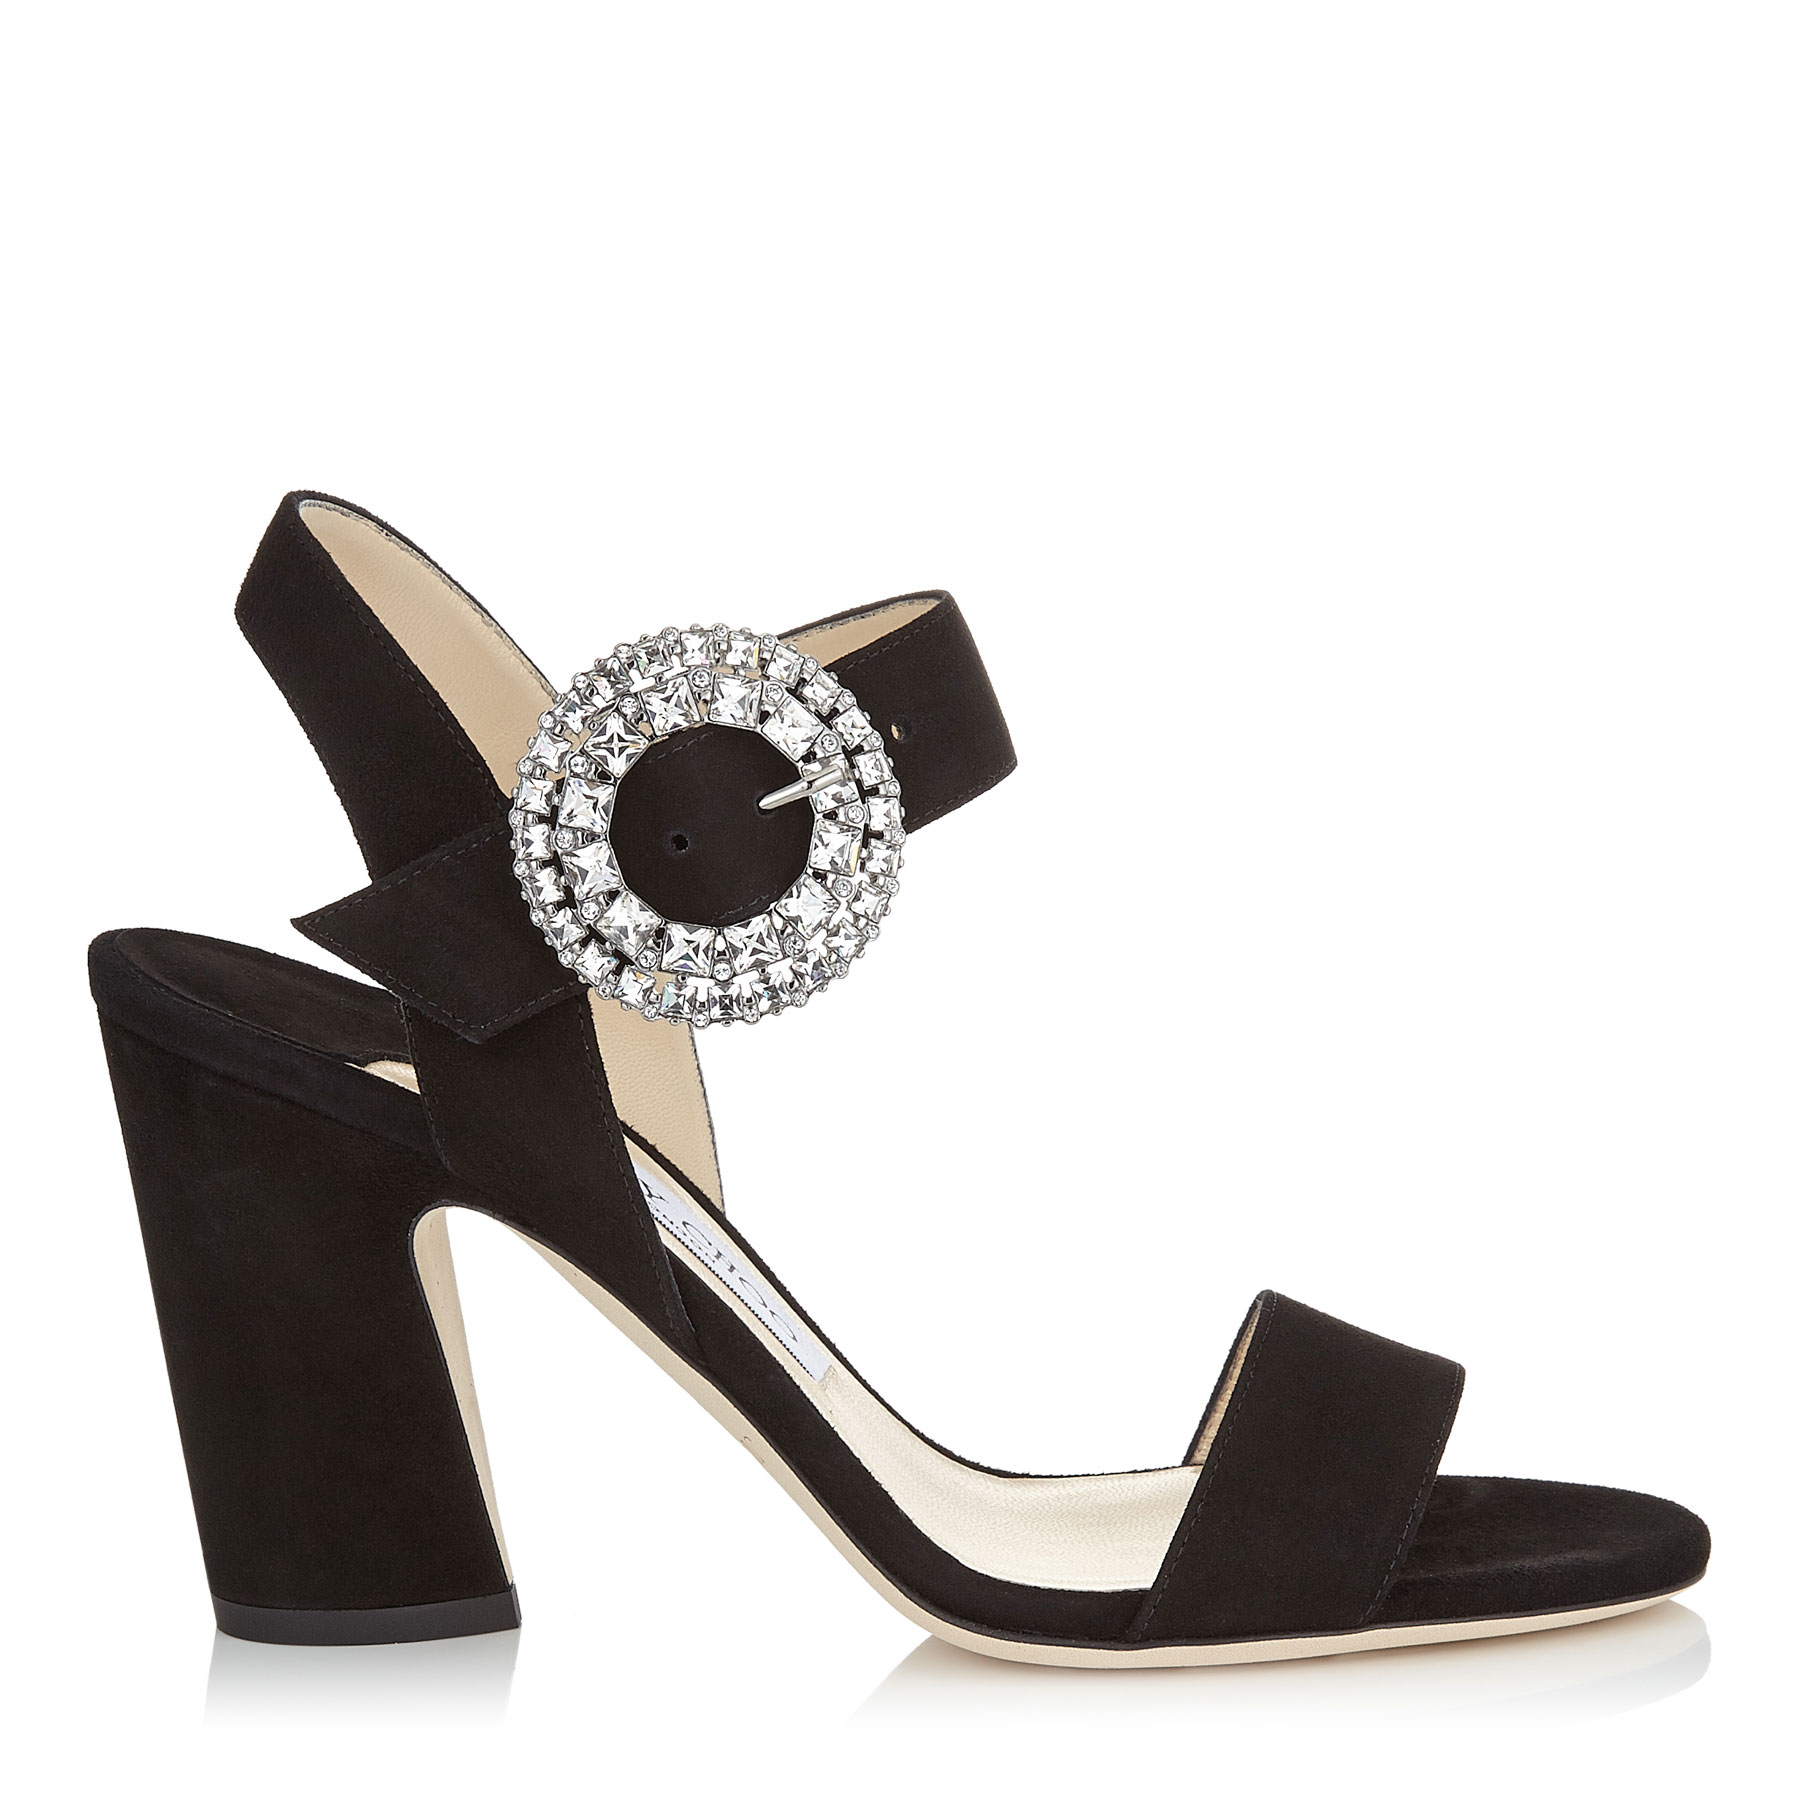 MISCHA 85 Black Suede Slingback Sandals with Crystal Buckle by Jimmy Choo